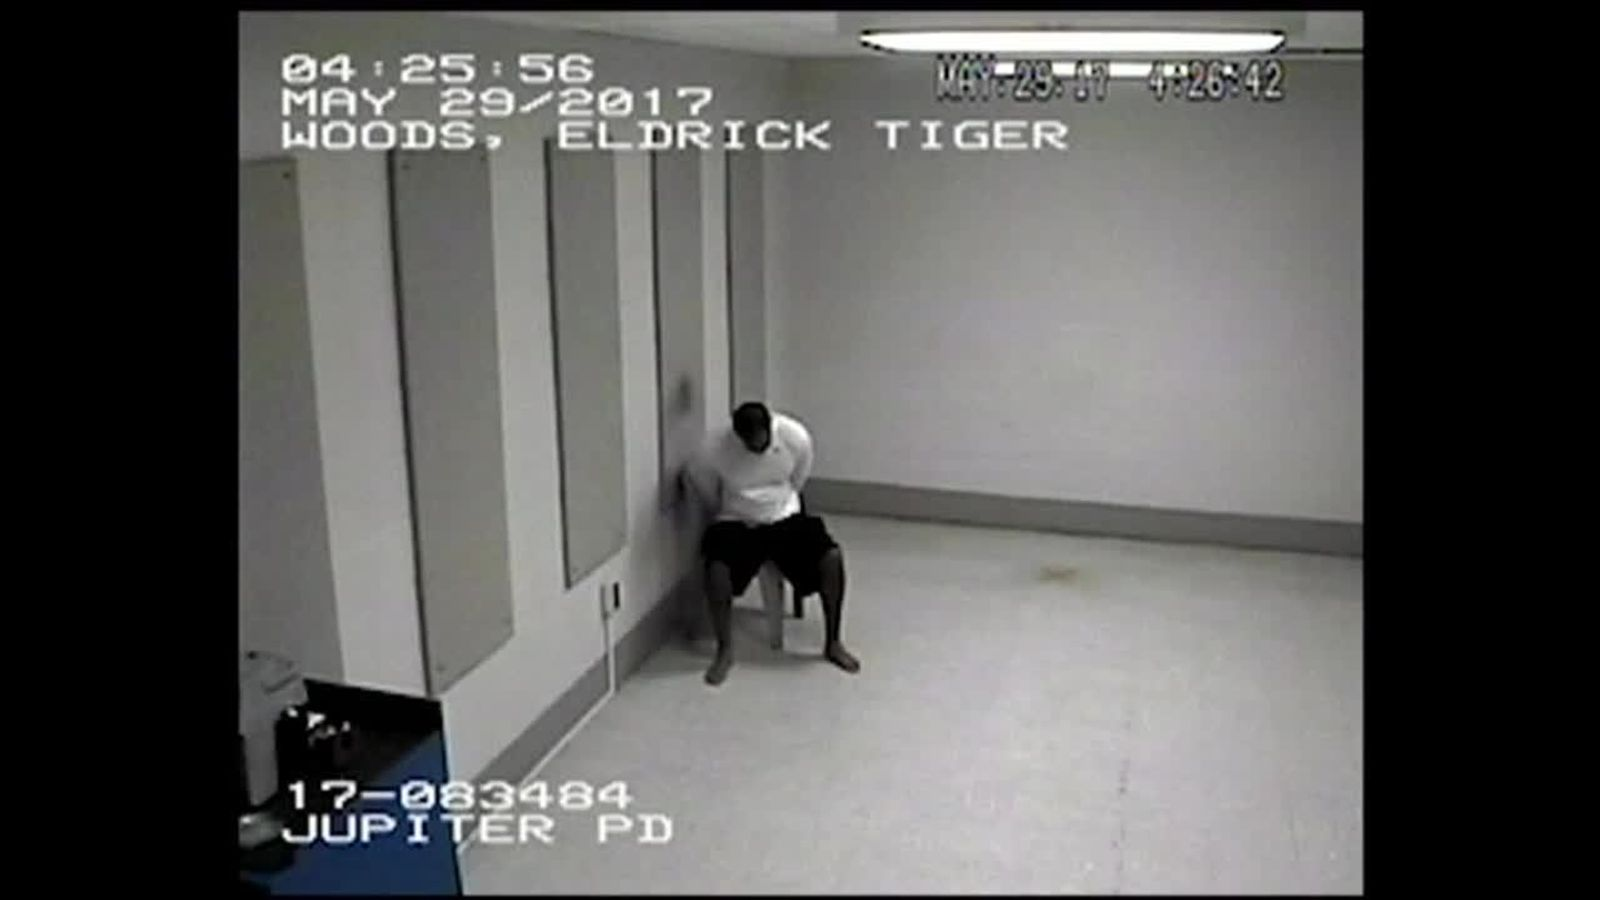 New video shows Tiger Woods at police station following DUI arrest